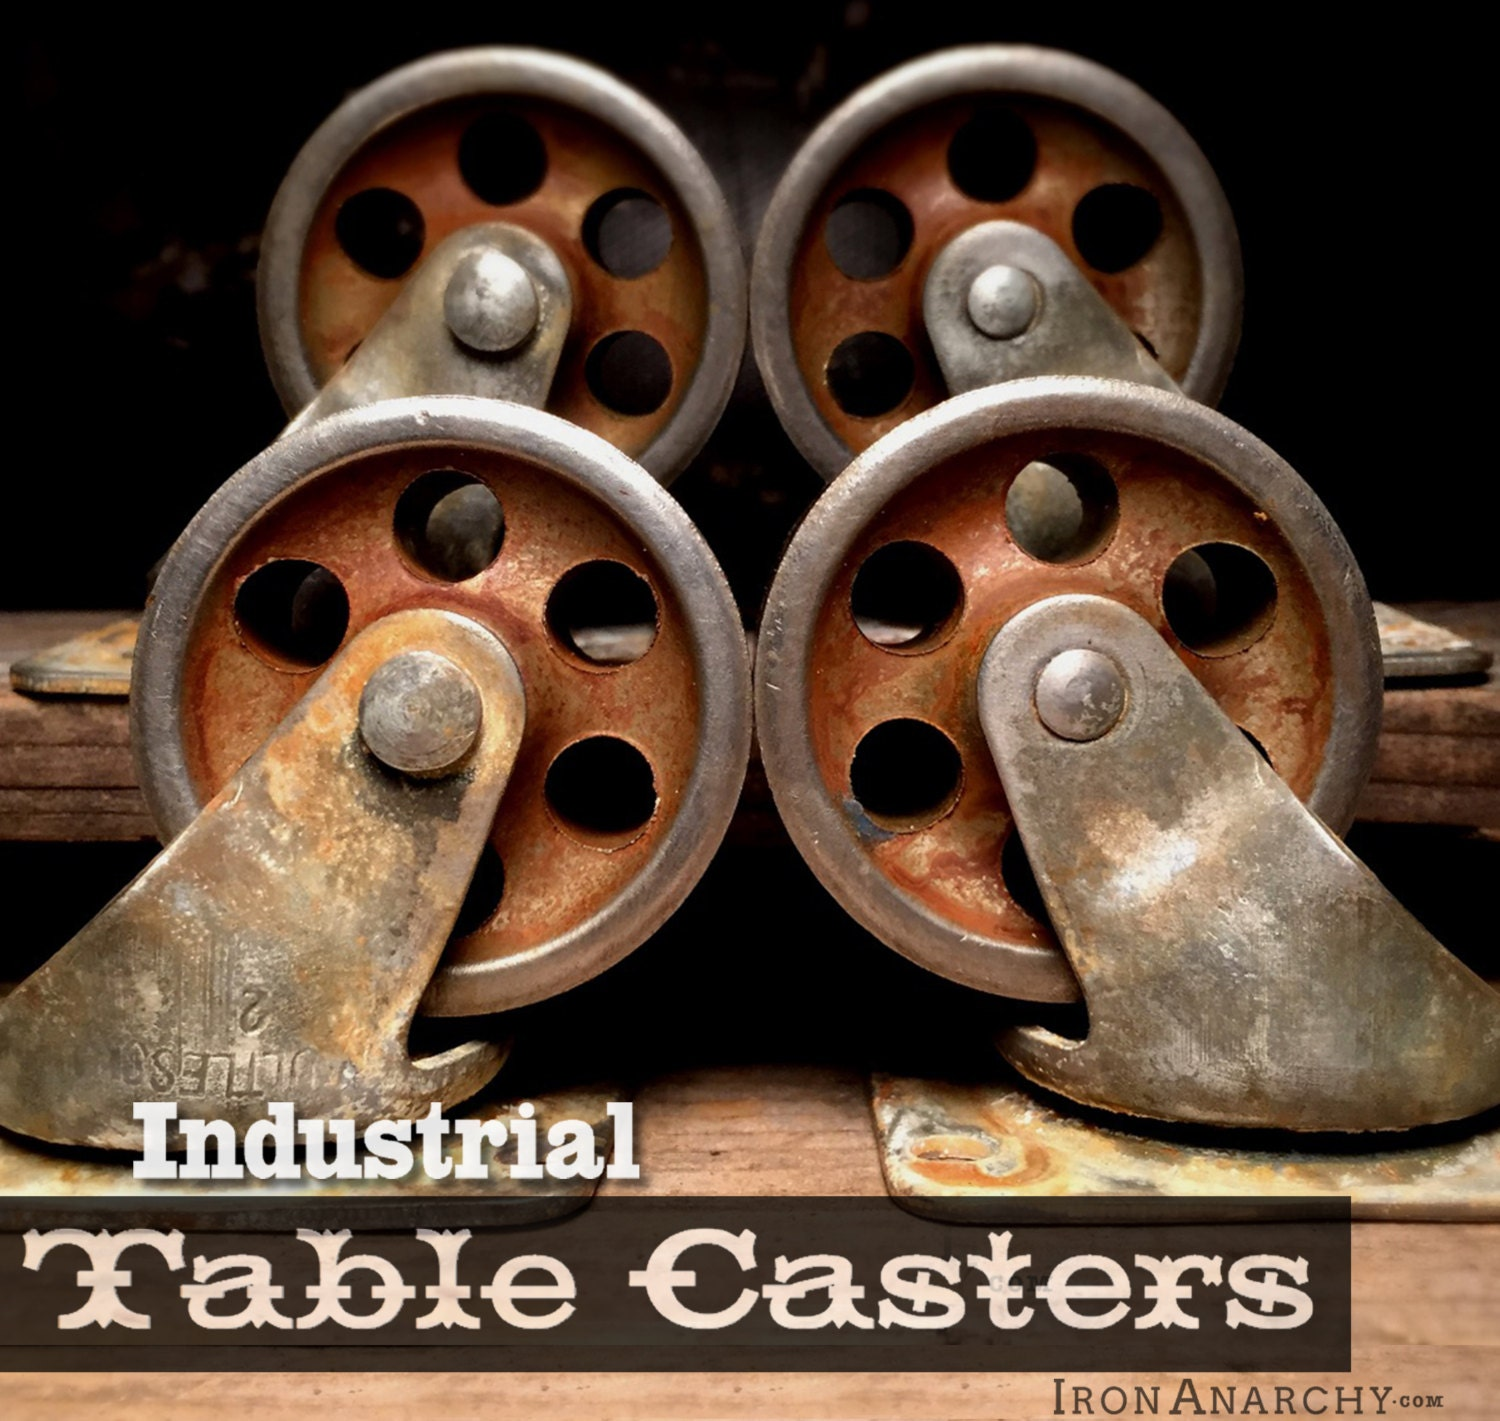 Industrial Casters For Coffee Table: Vintage Casters Industrial Casters Coffee Table By IronAnarchy